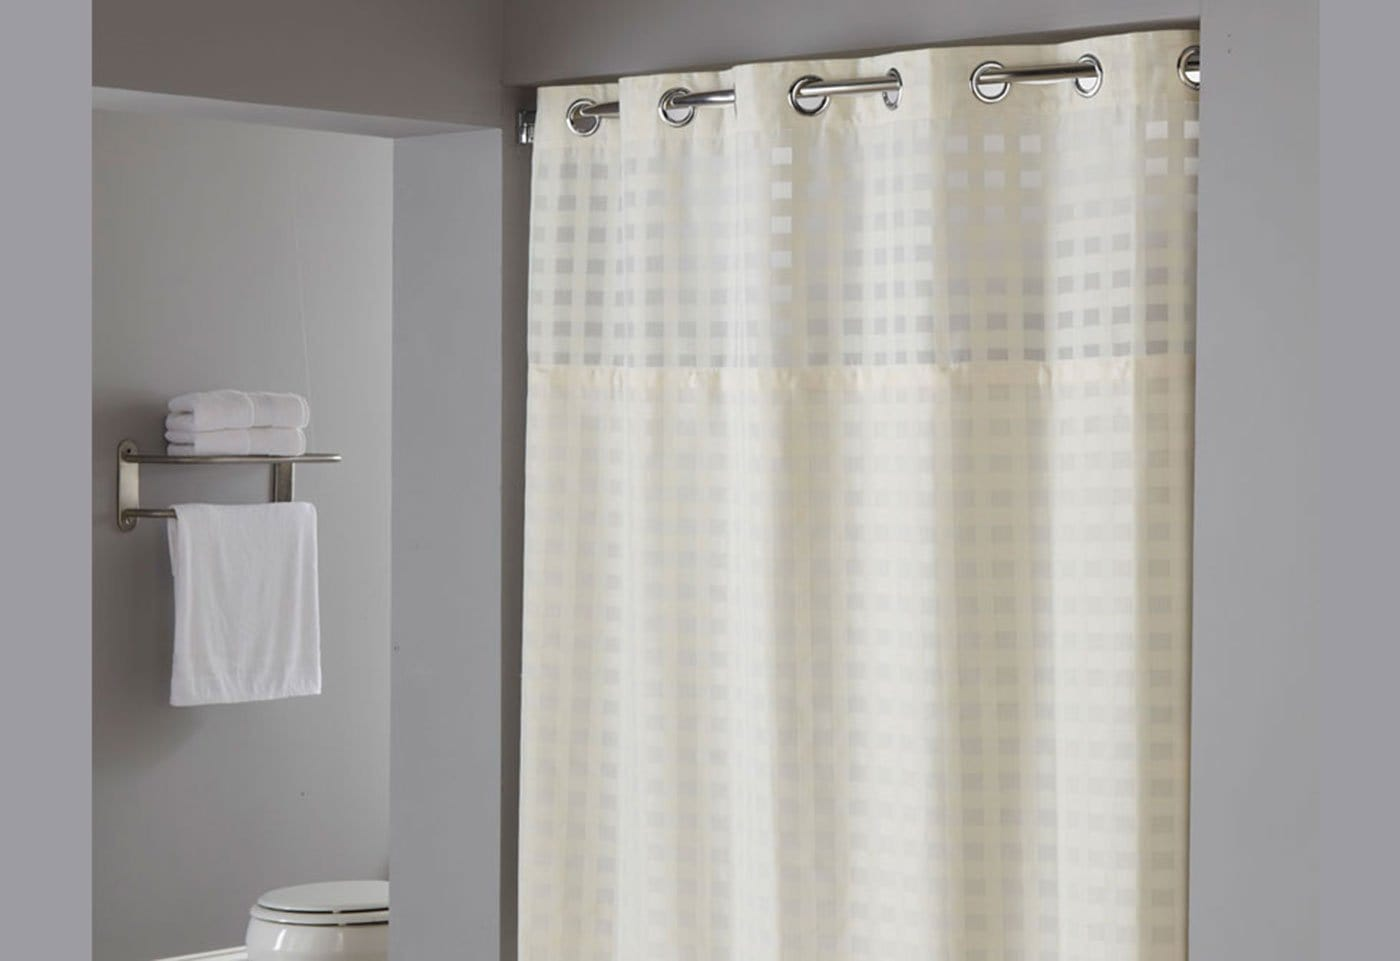 Shimmy Square Hookless Shower Curtain